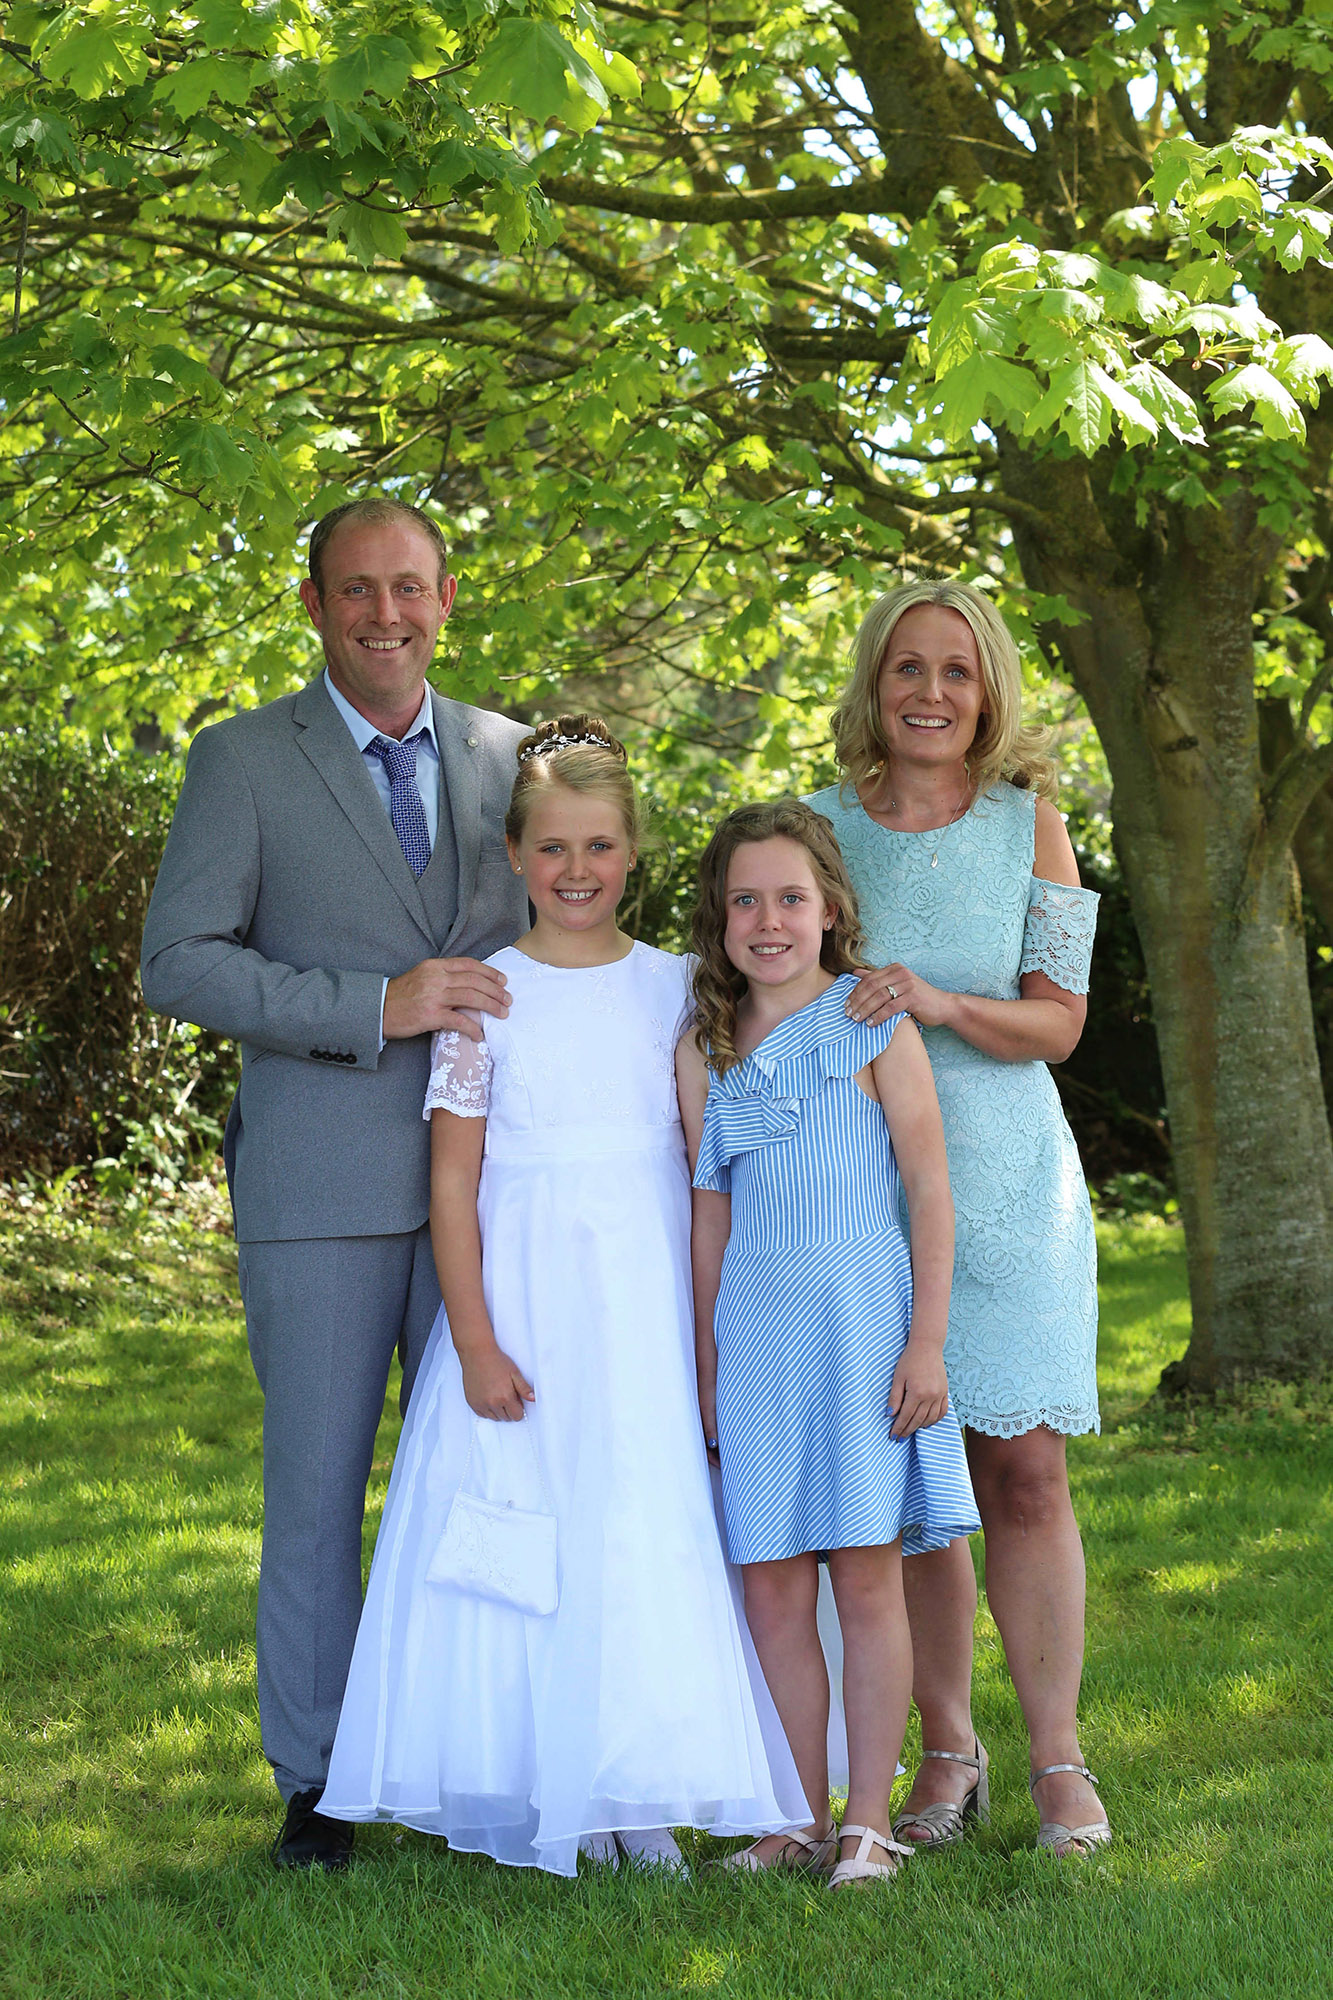 Communion girl with her family by Jenny Callanan Photography